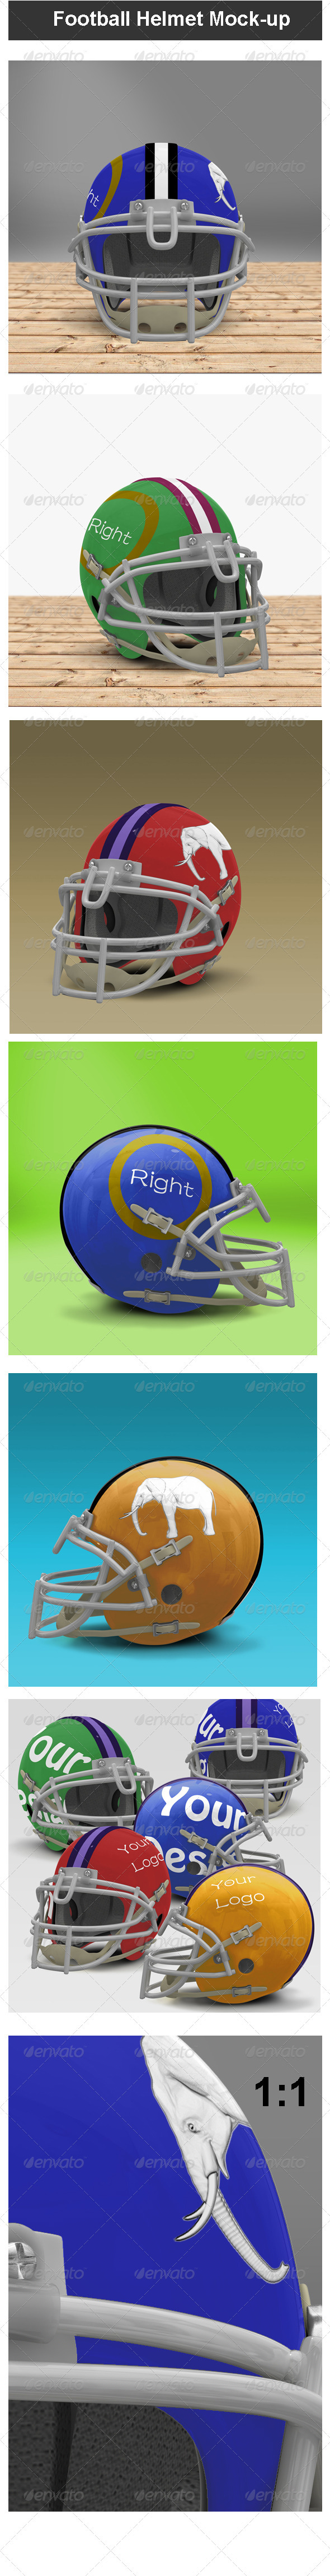 Football Helmet Mock-up - Miscellaneous Apparel